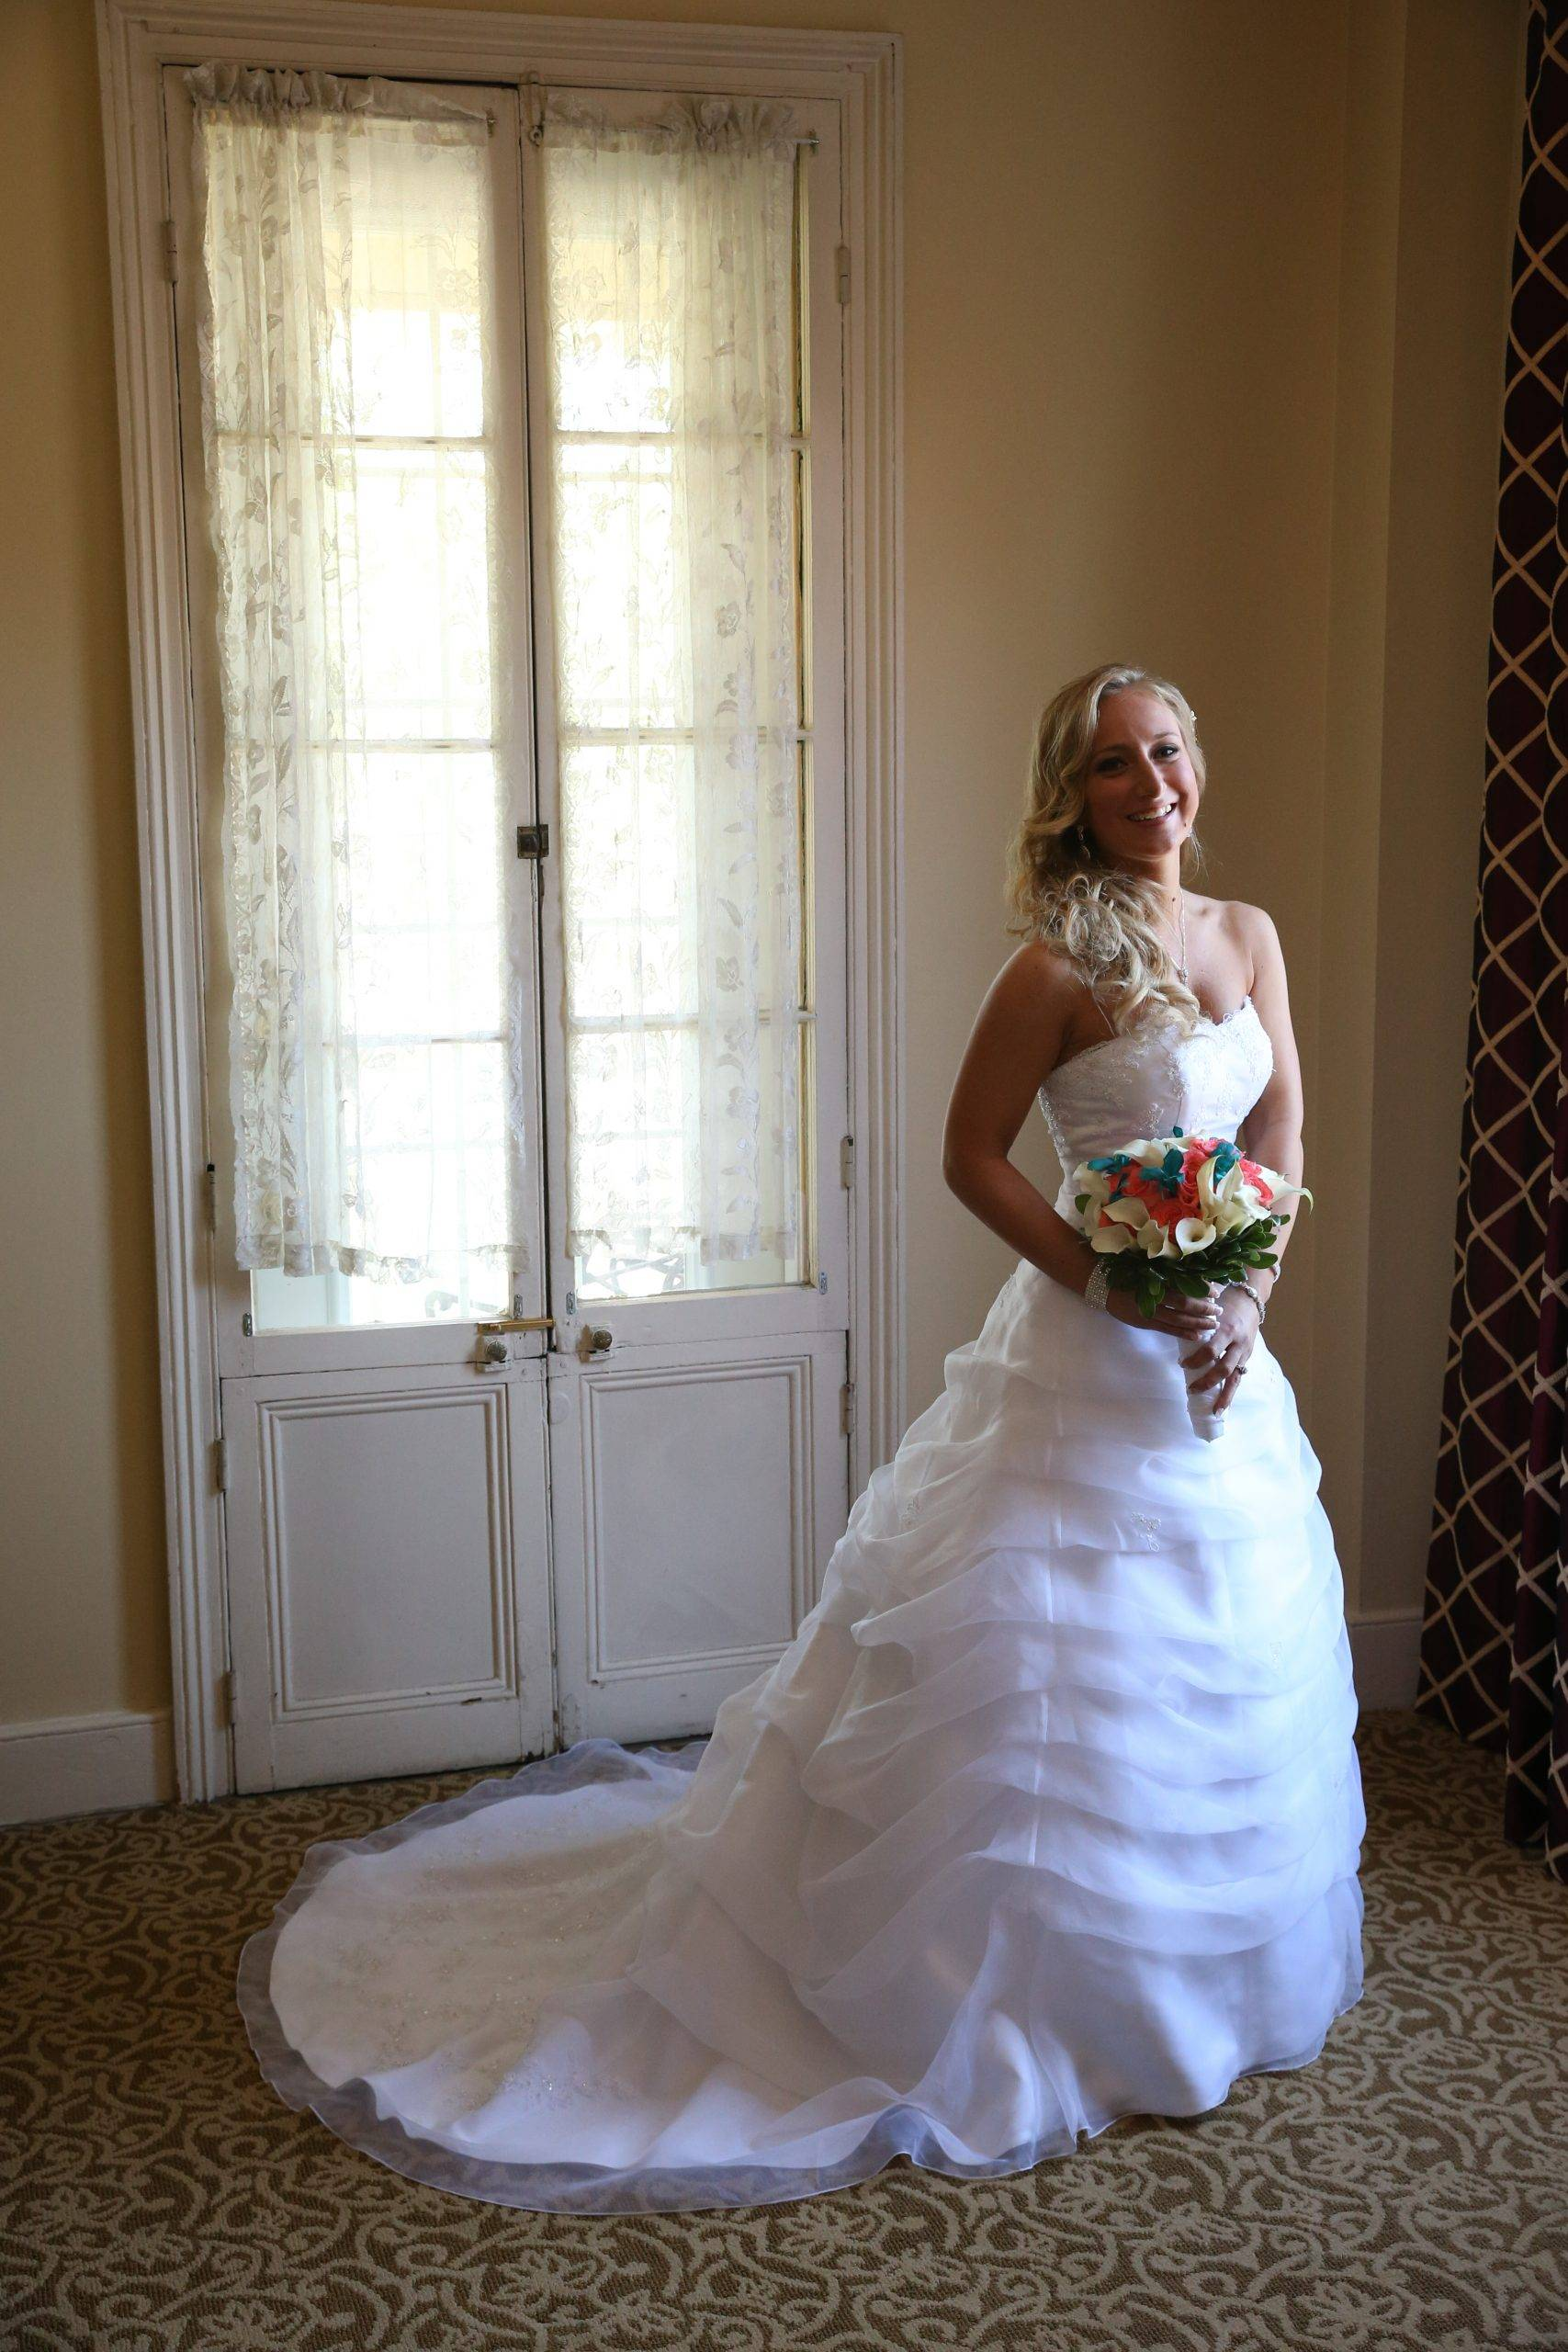 David's Country Inn bride ready for her wedding